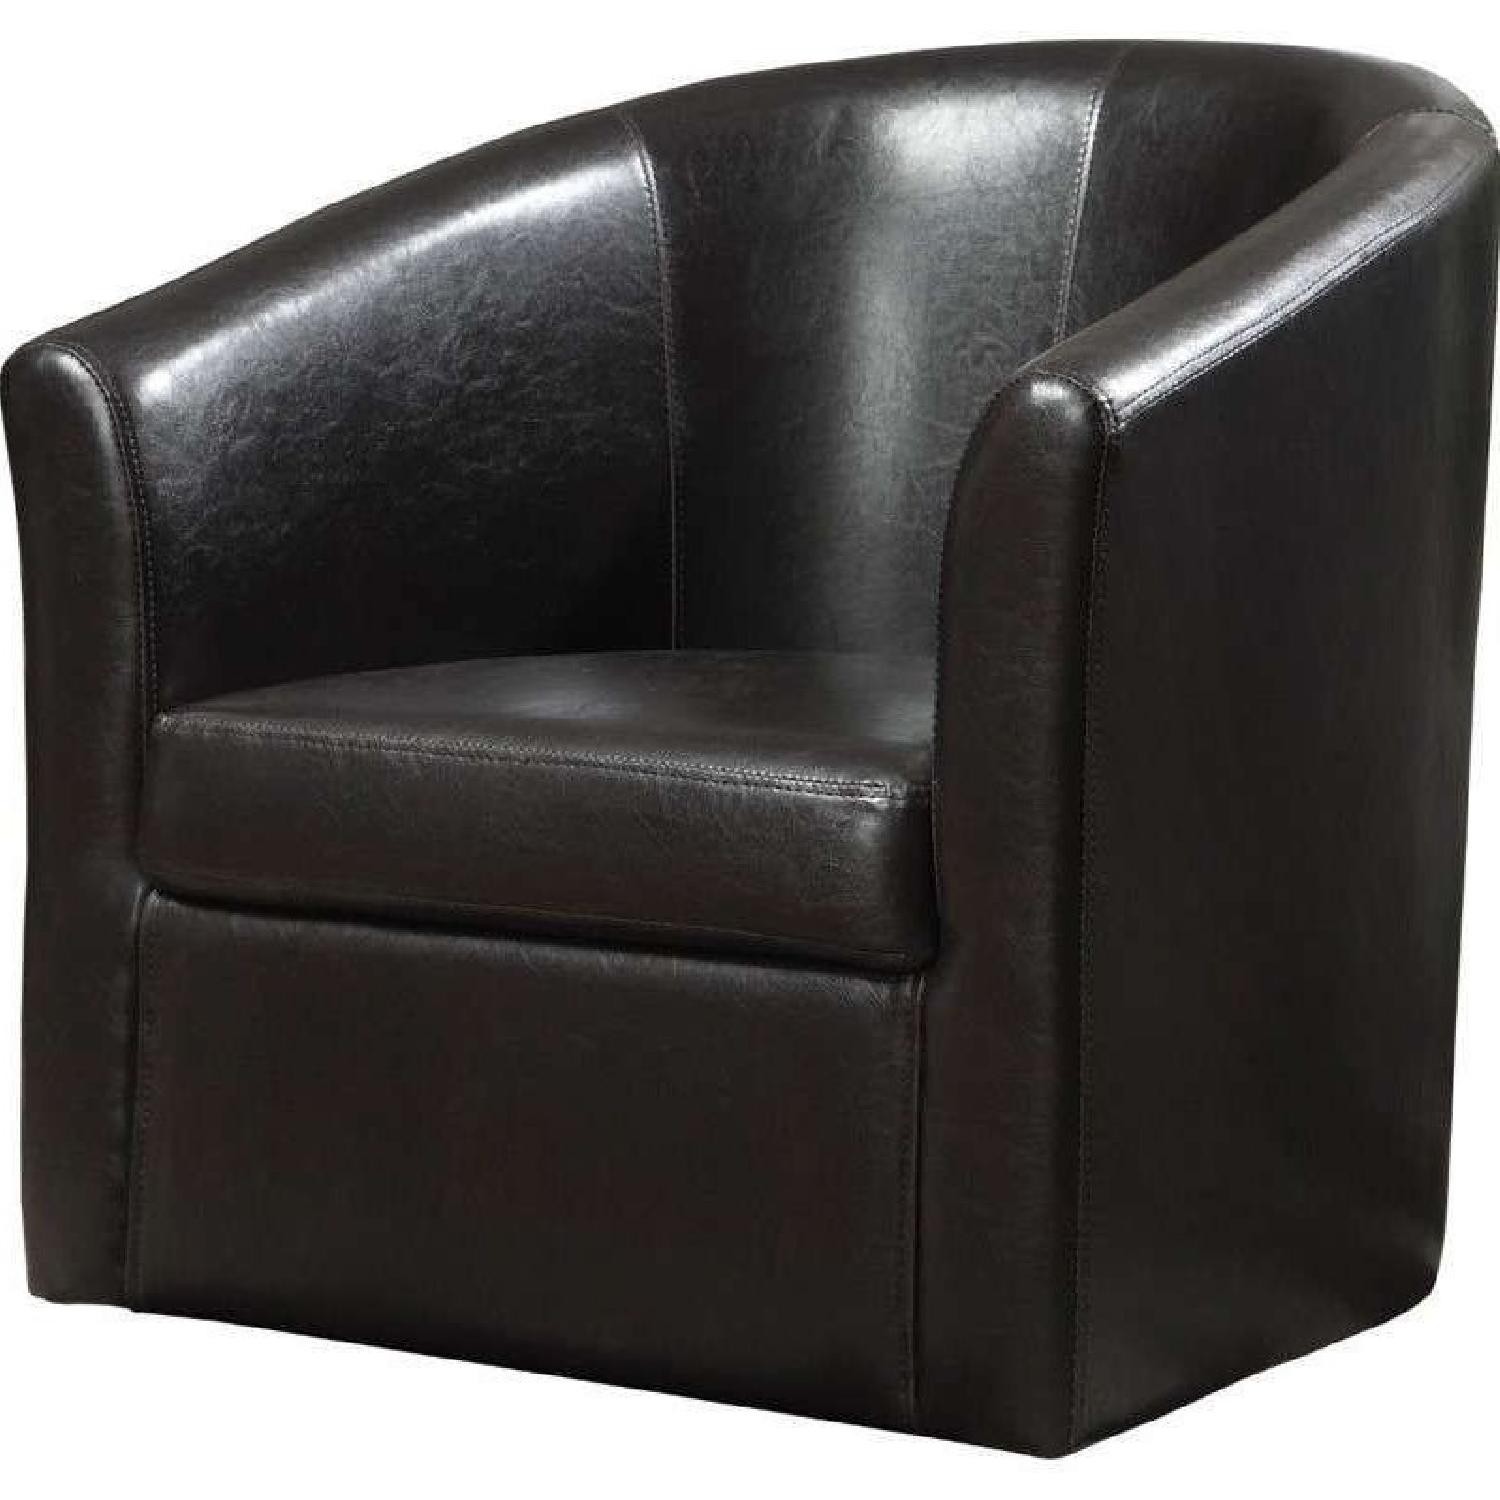 Modern Accent Chair in Dark Brown Faux Leather - image-1